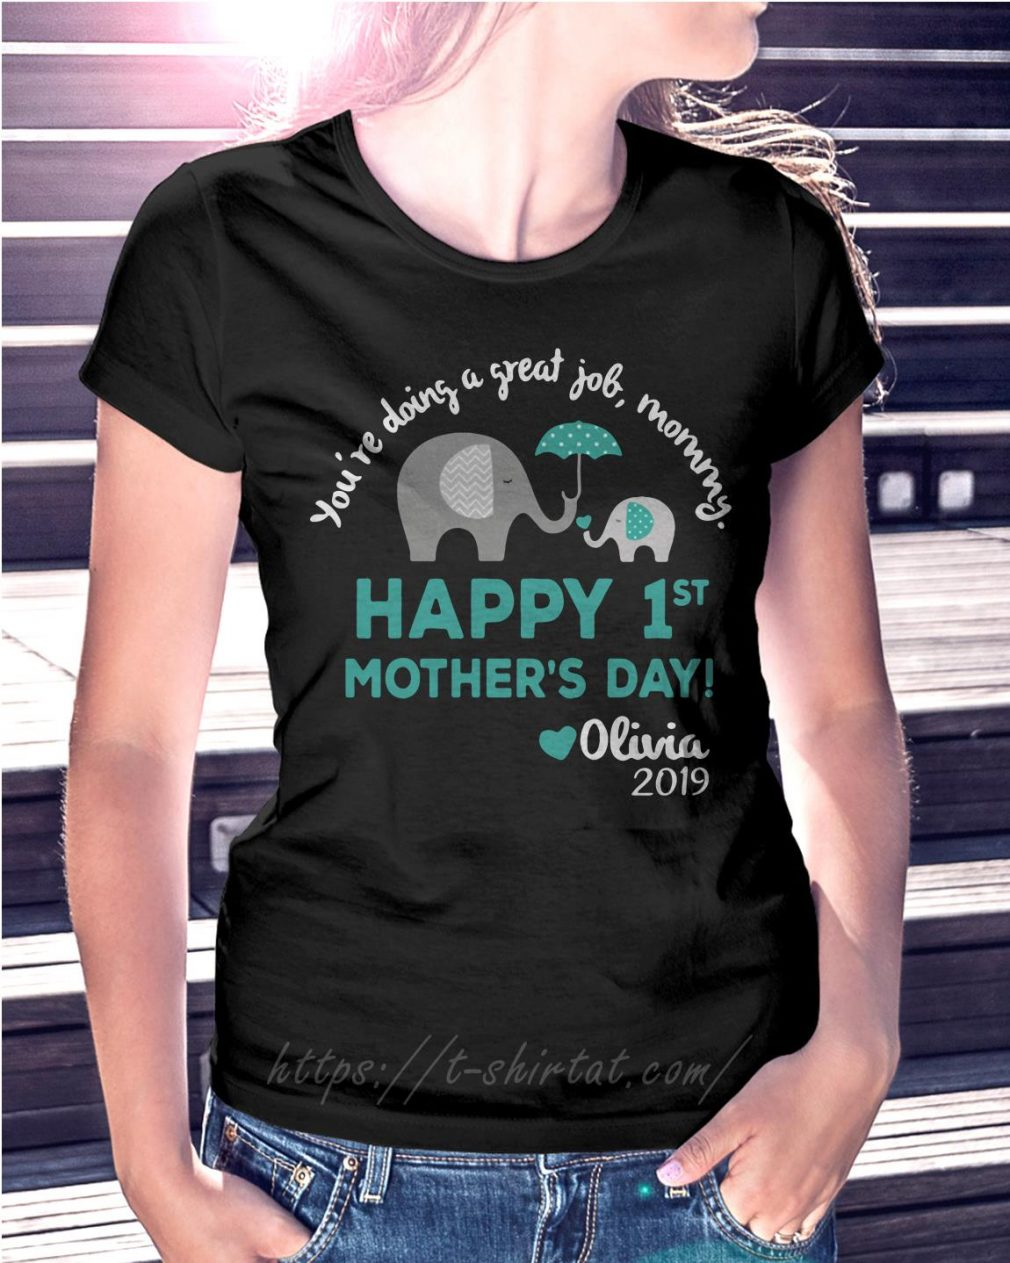 Elephants you're doing a great job mommy happy 1st mother's day Olivia 2019